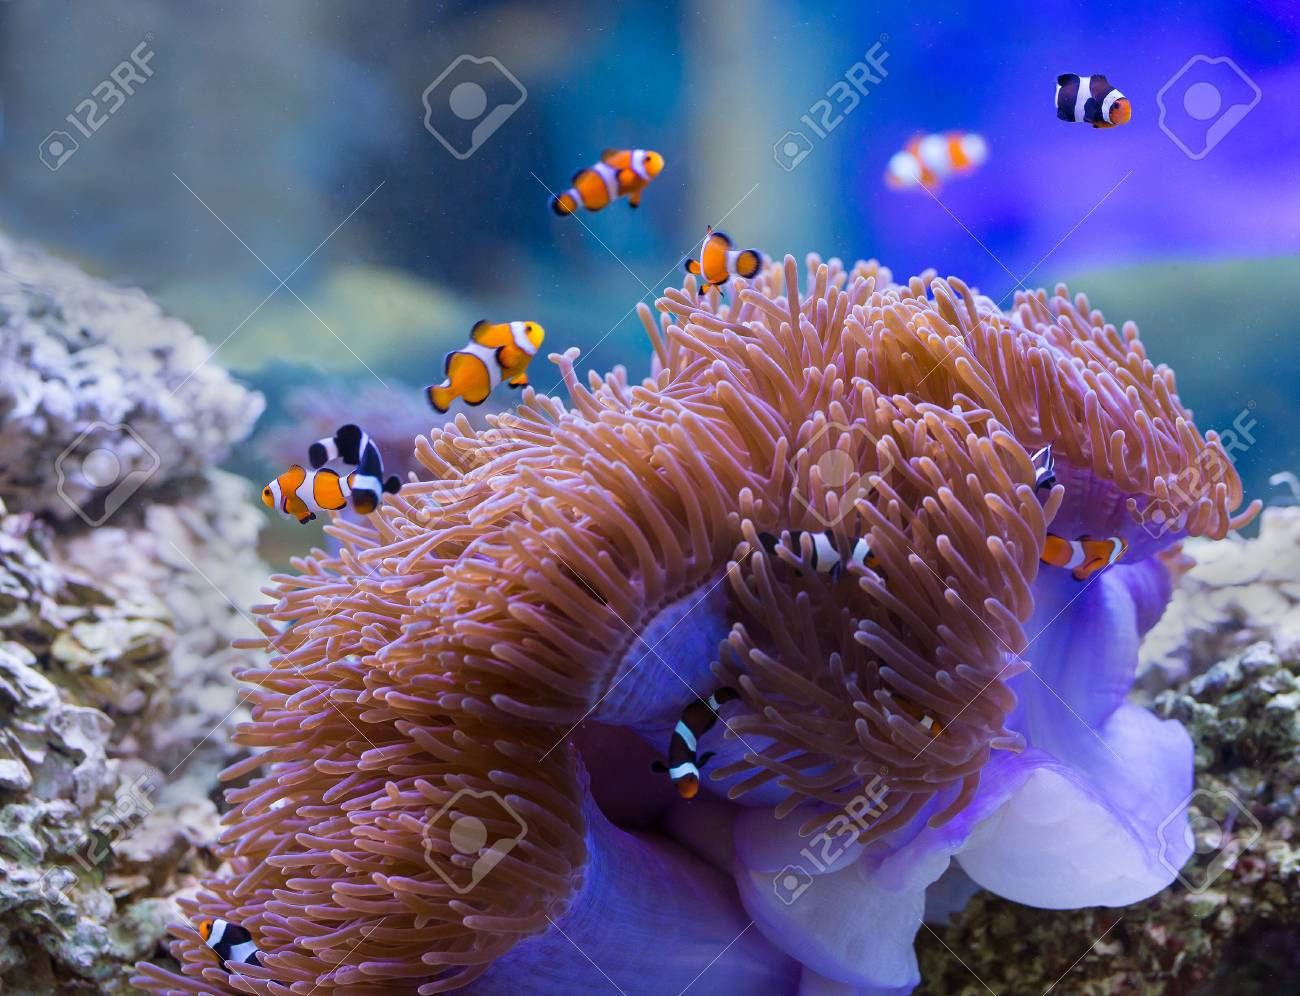 Sea Anemone And Anemone Fish concernant Anémone Des Mers